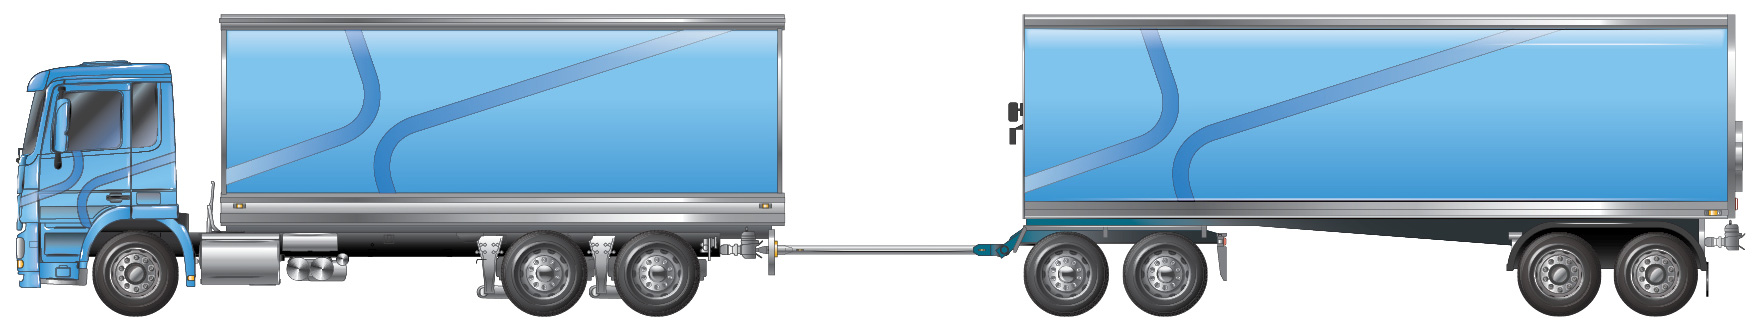 Truck and dog trailer